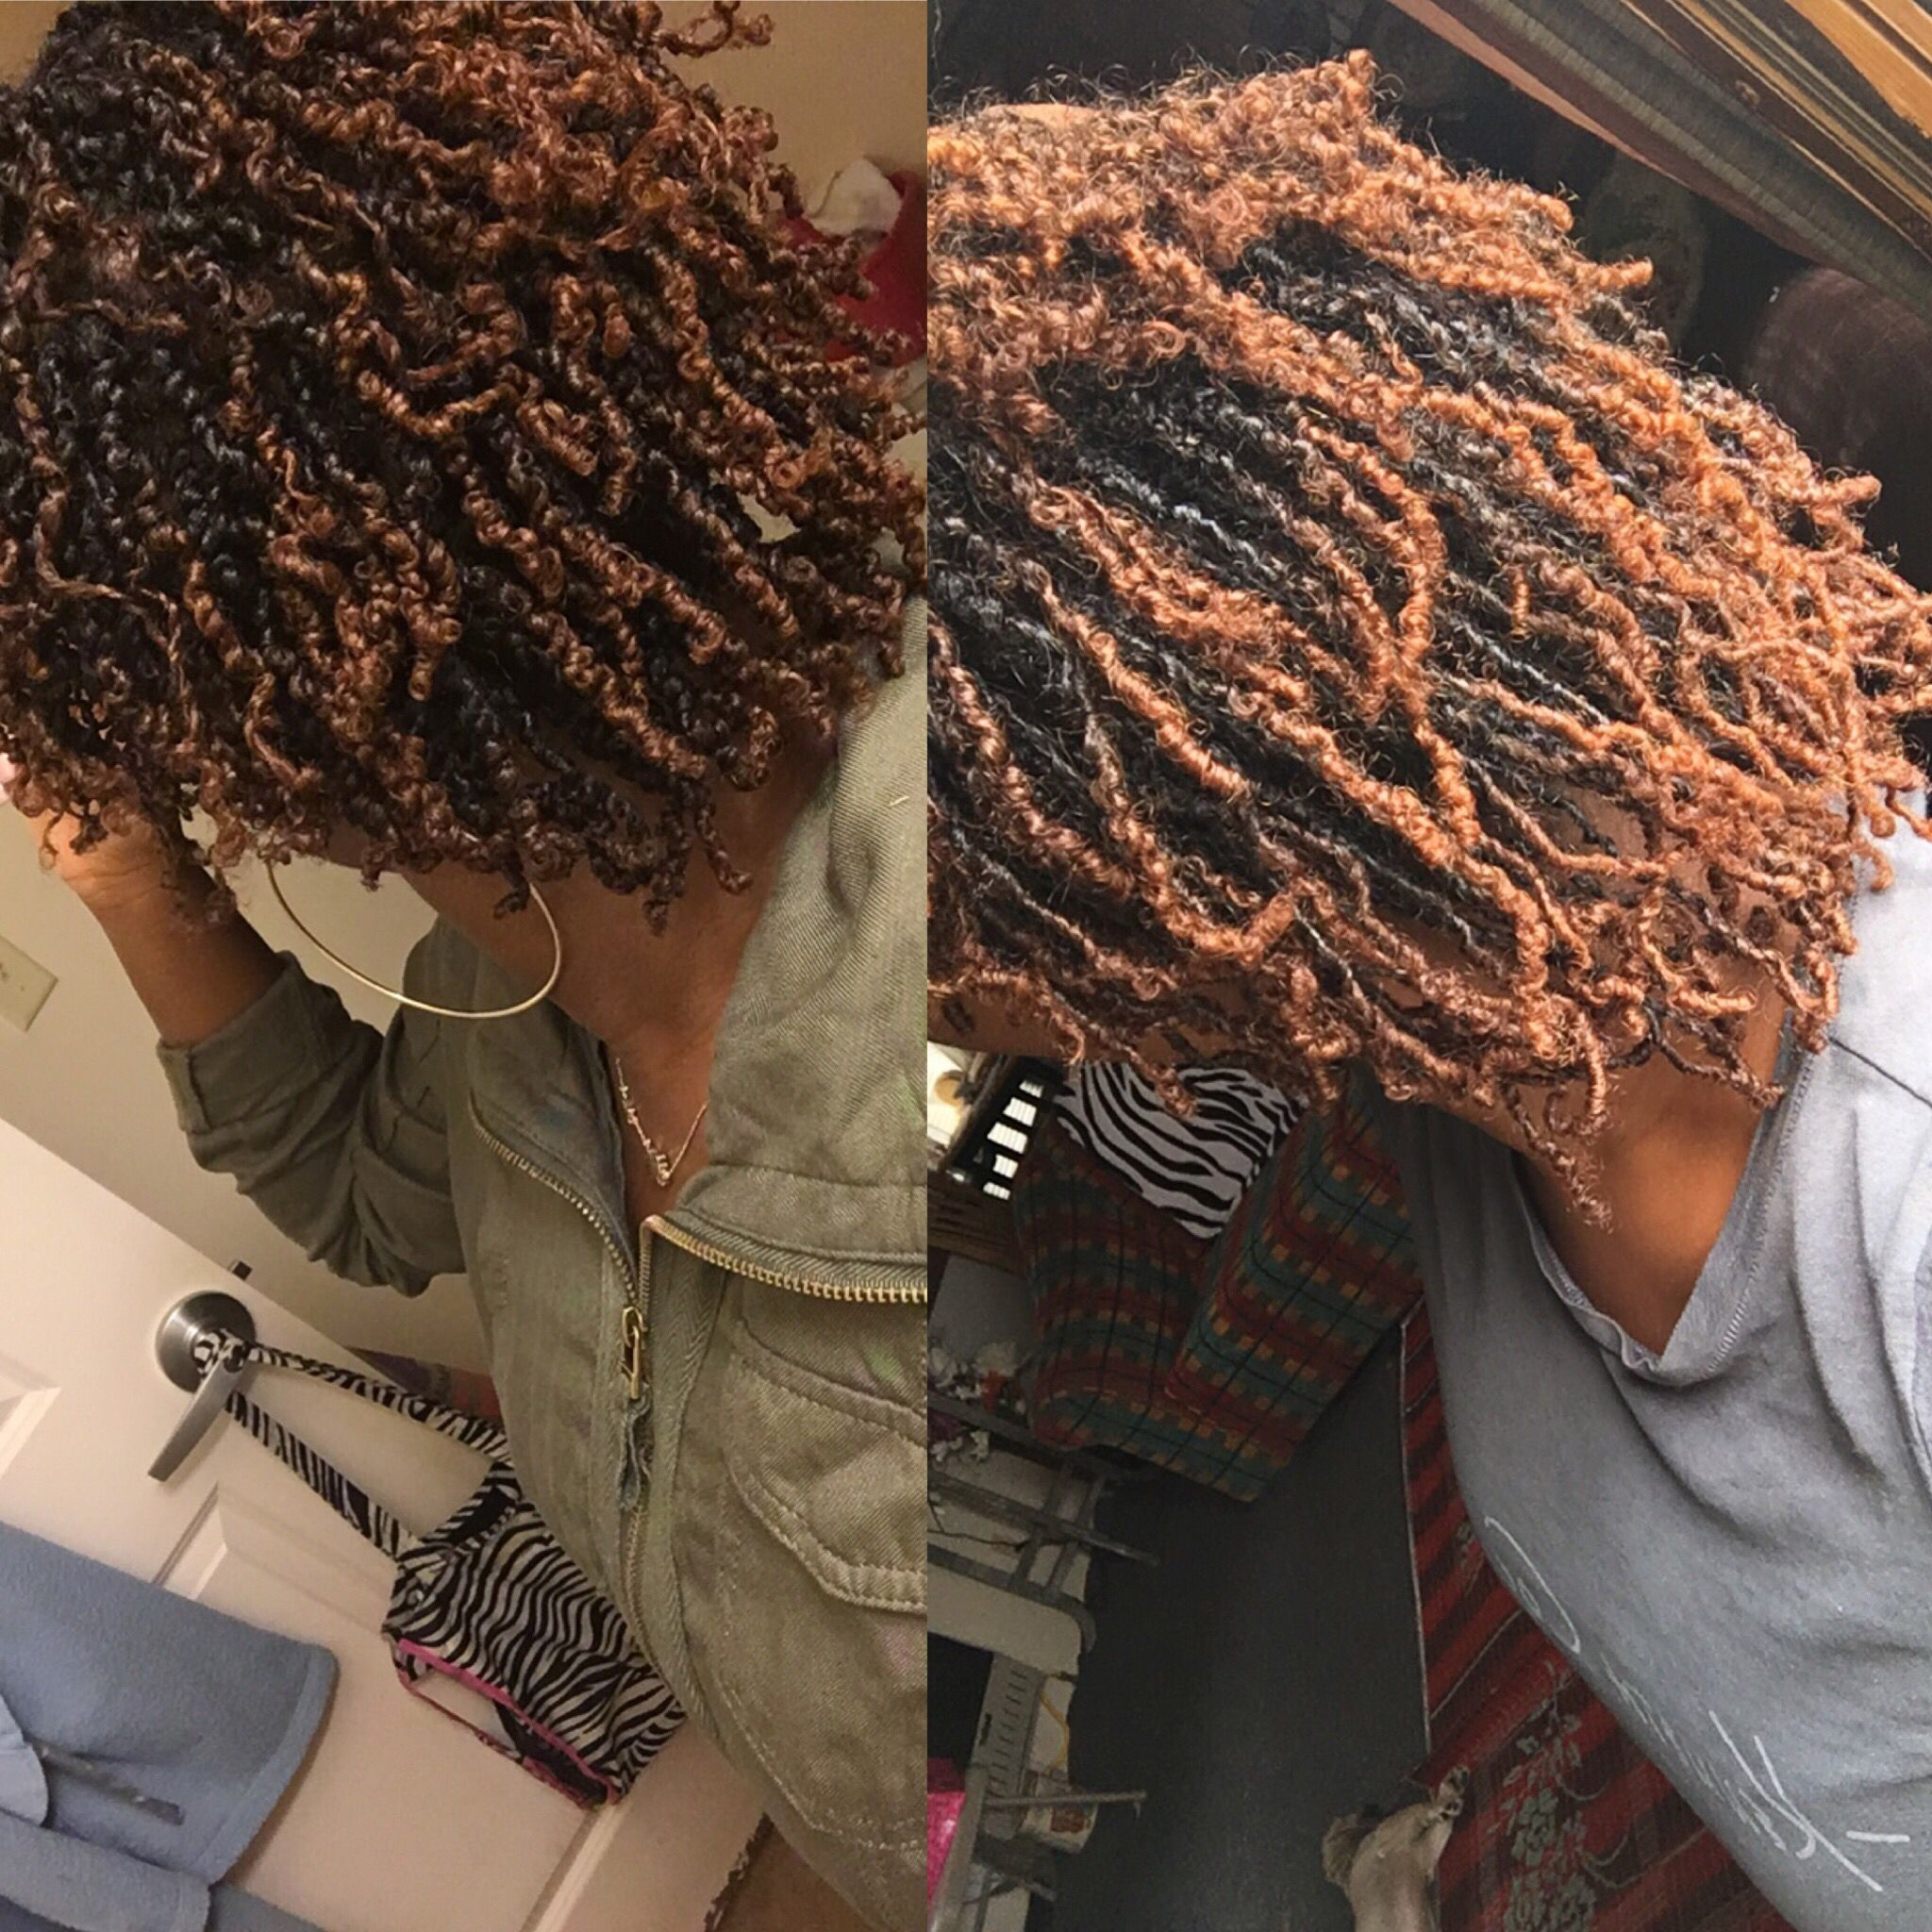 Month 1 vs month 2. The only thing that is annoying is like three of the same twists keeps unraveling. I'm thinking about rubber banding those ends. I've washed my hair once with Dr bronner's peppermint soap and partially retightened once. #locjourney #womenwithlocs #twiststolocs #smalllocs